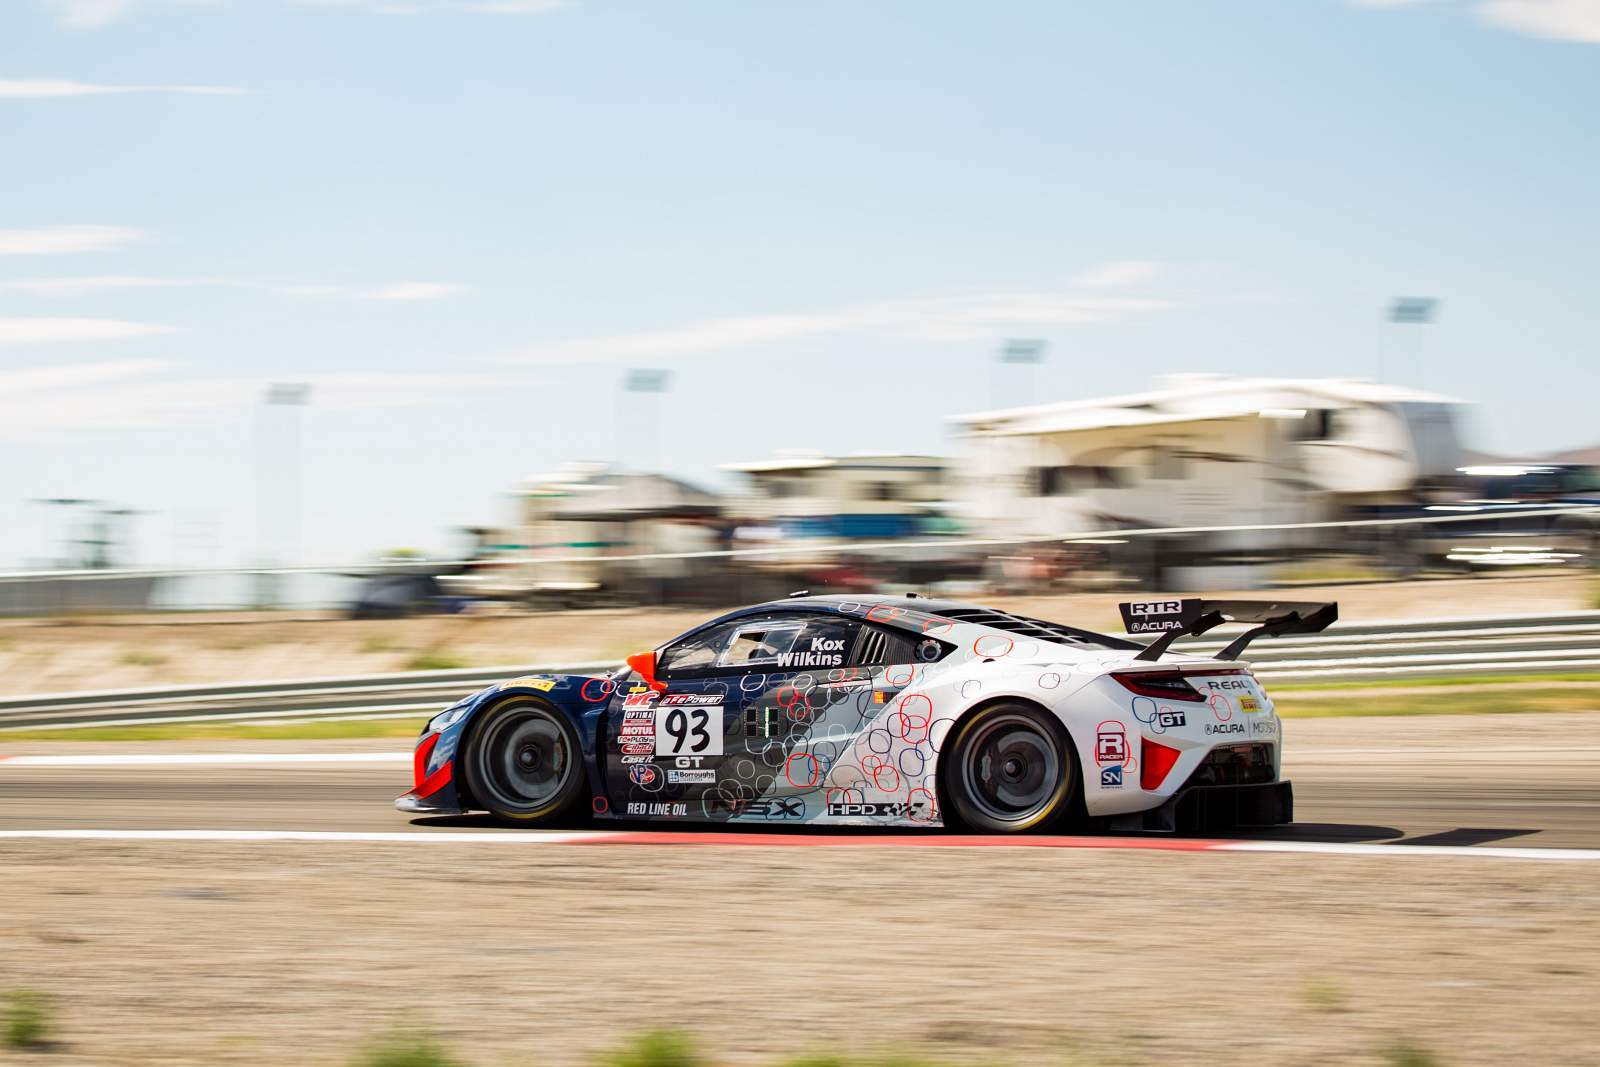 peter-kox-realtime-racing-pirelli-world-challenge-utah-motorsport-campus--112